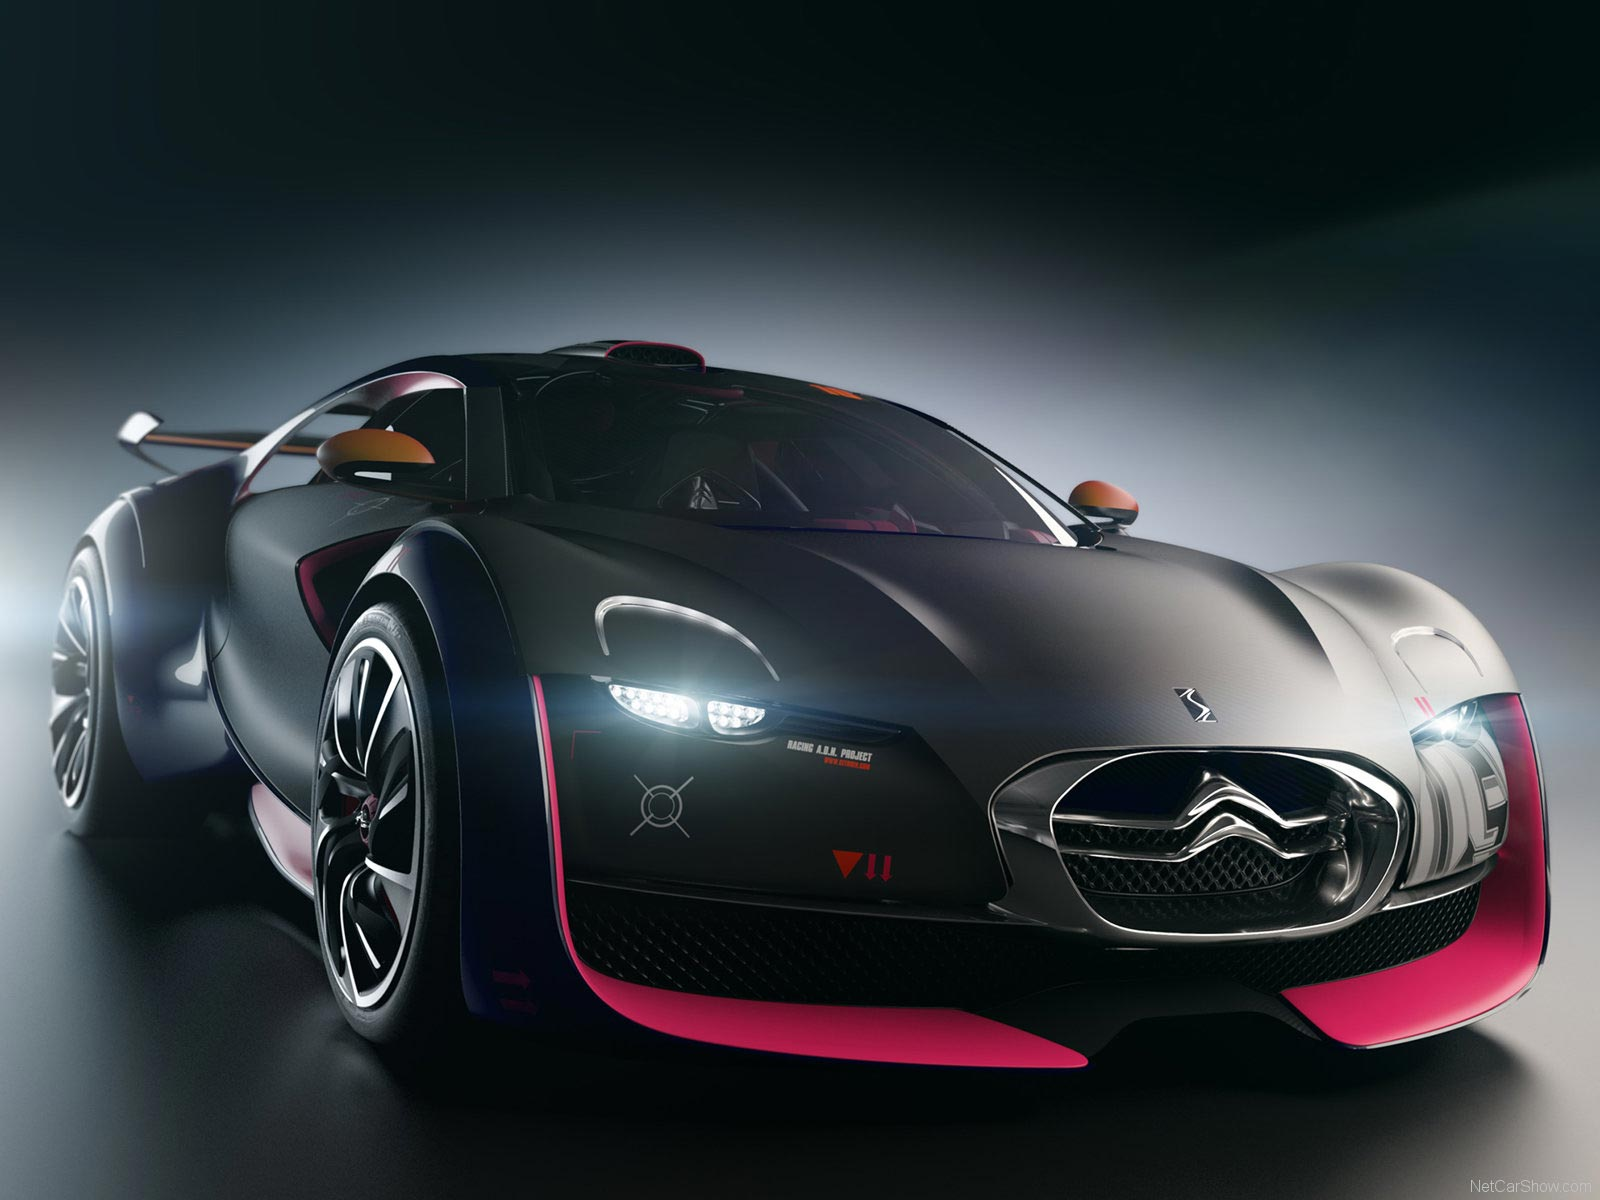 Citroen Survolt Concept Front Car Wallpaper Free Backgrounds